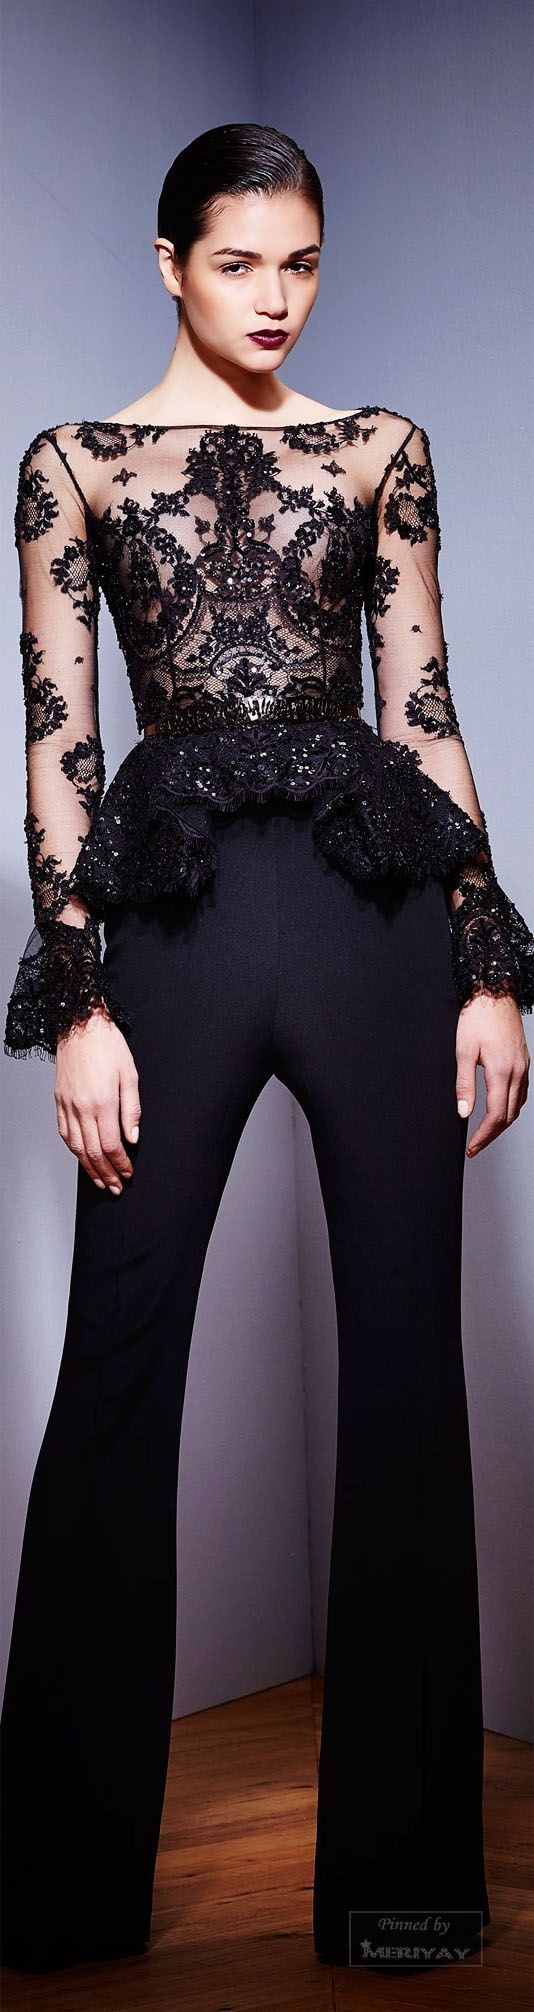 Zuhair Murad.Fall 2015. Clothing, Shoes & Jewelry : Women : Shoes : Fashion Sneakers : shoes http://amzn.to/2kB4kZa